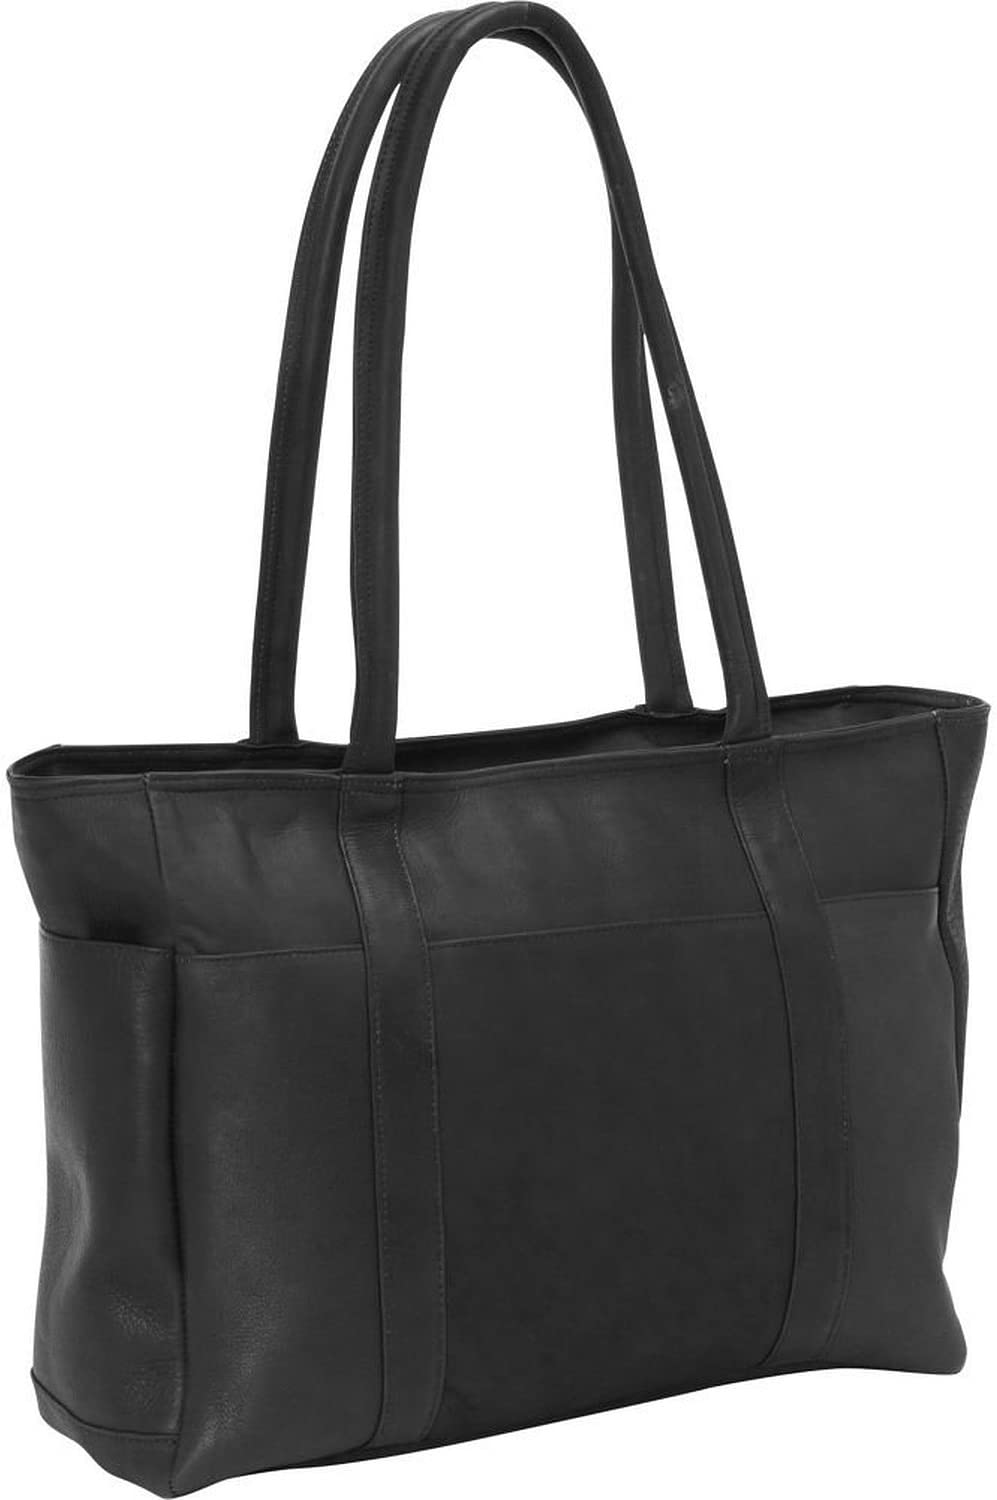 David NEW before selling ☆ King Co. Multi Pocket Shopping 574 Size Tote Black One Limited price sale